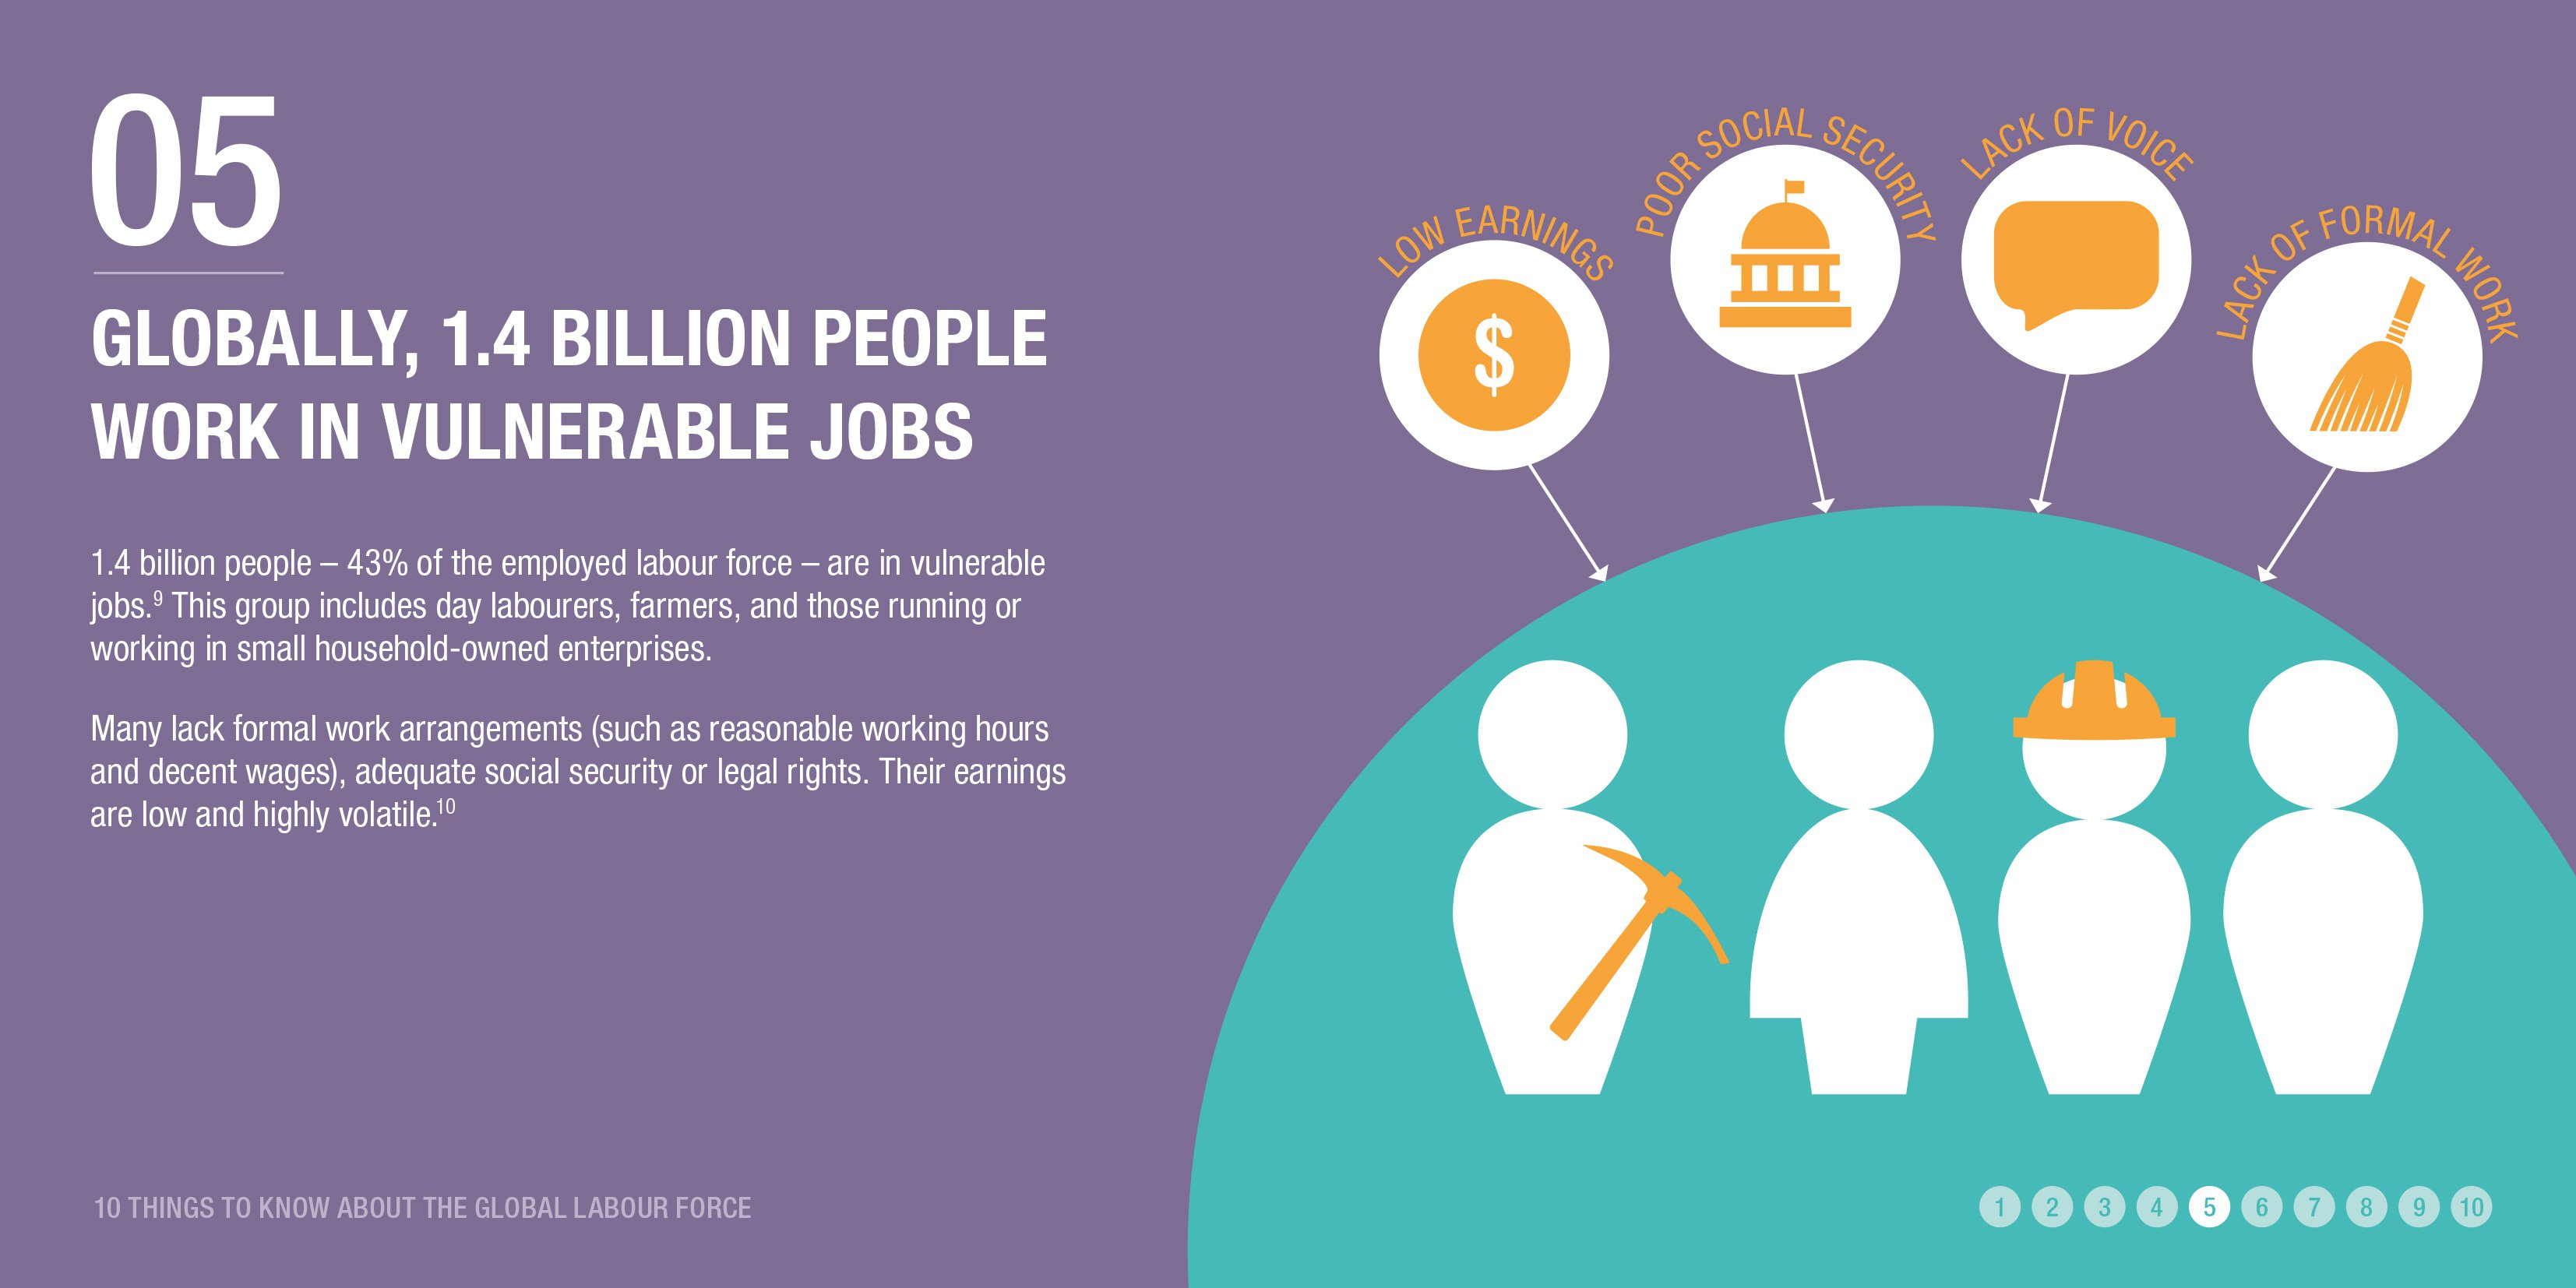 Globally, 1.4 billion people work in vulnerable jobs